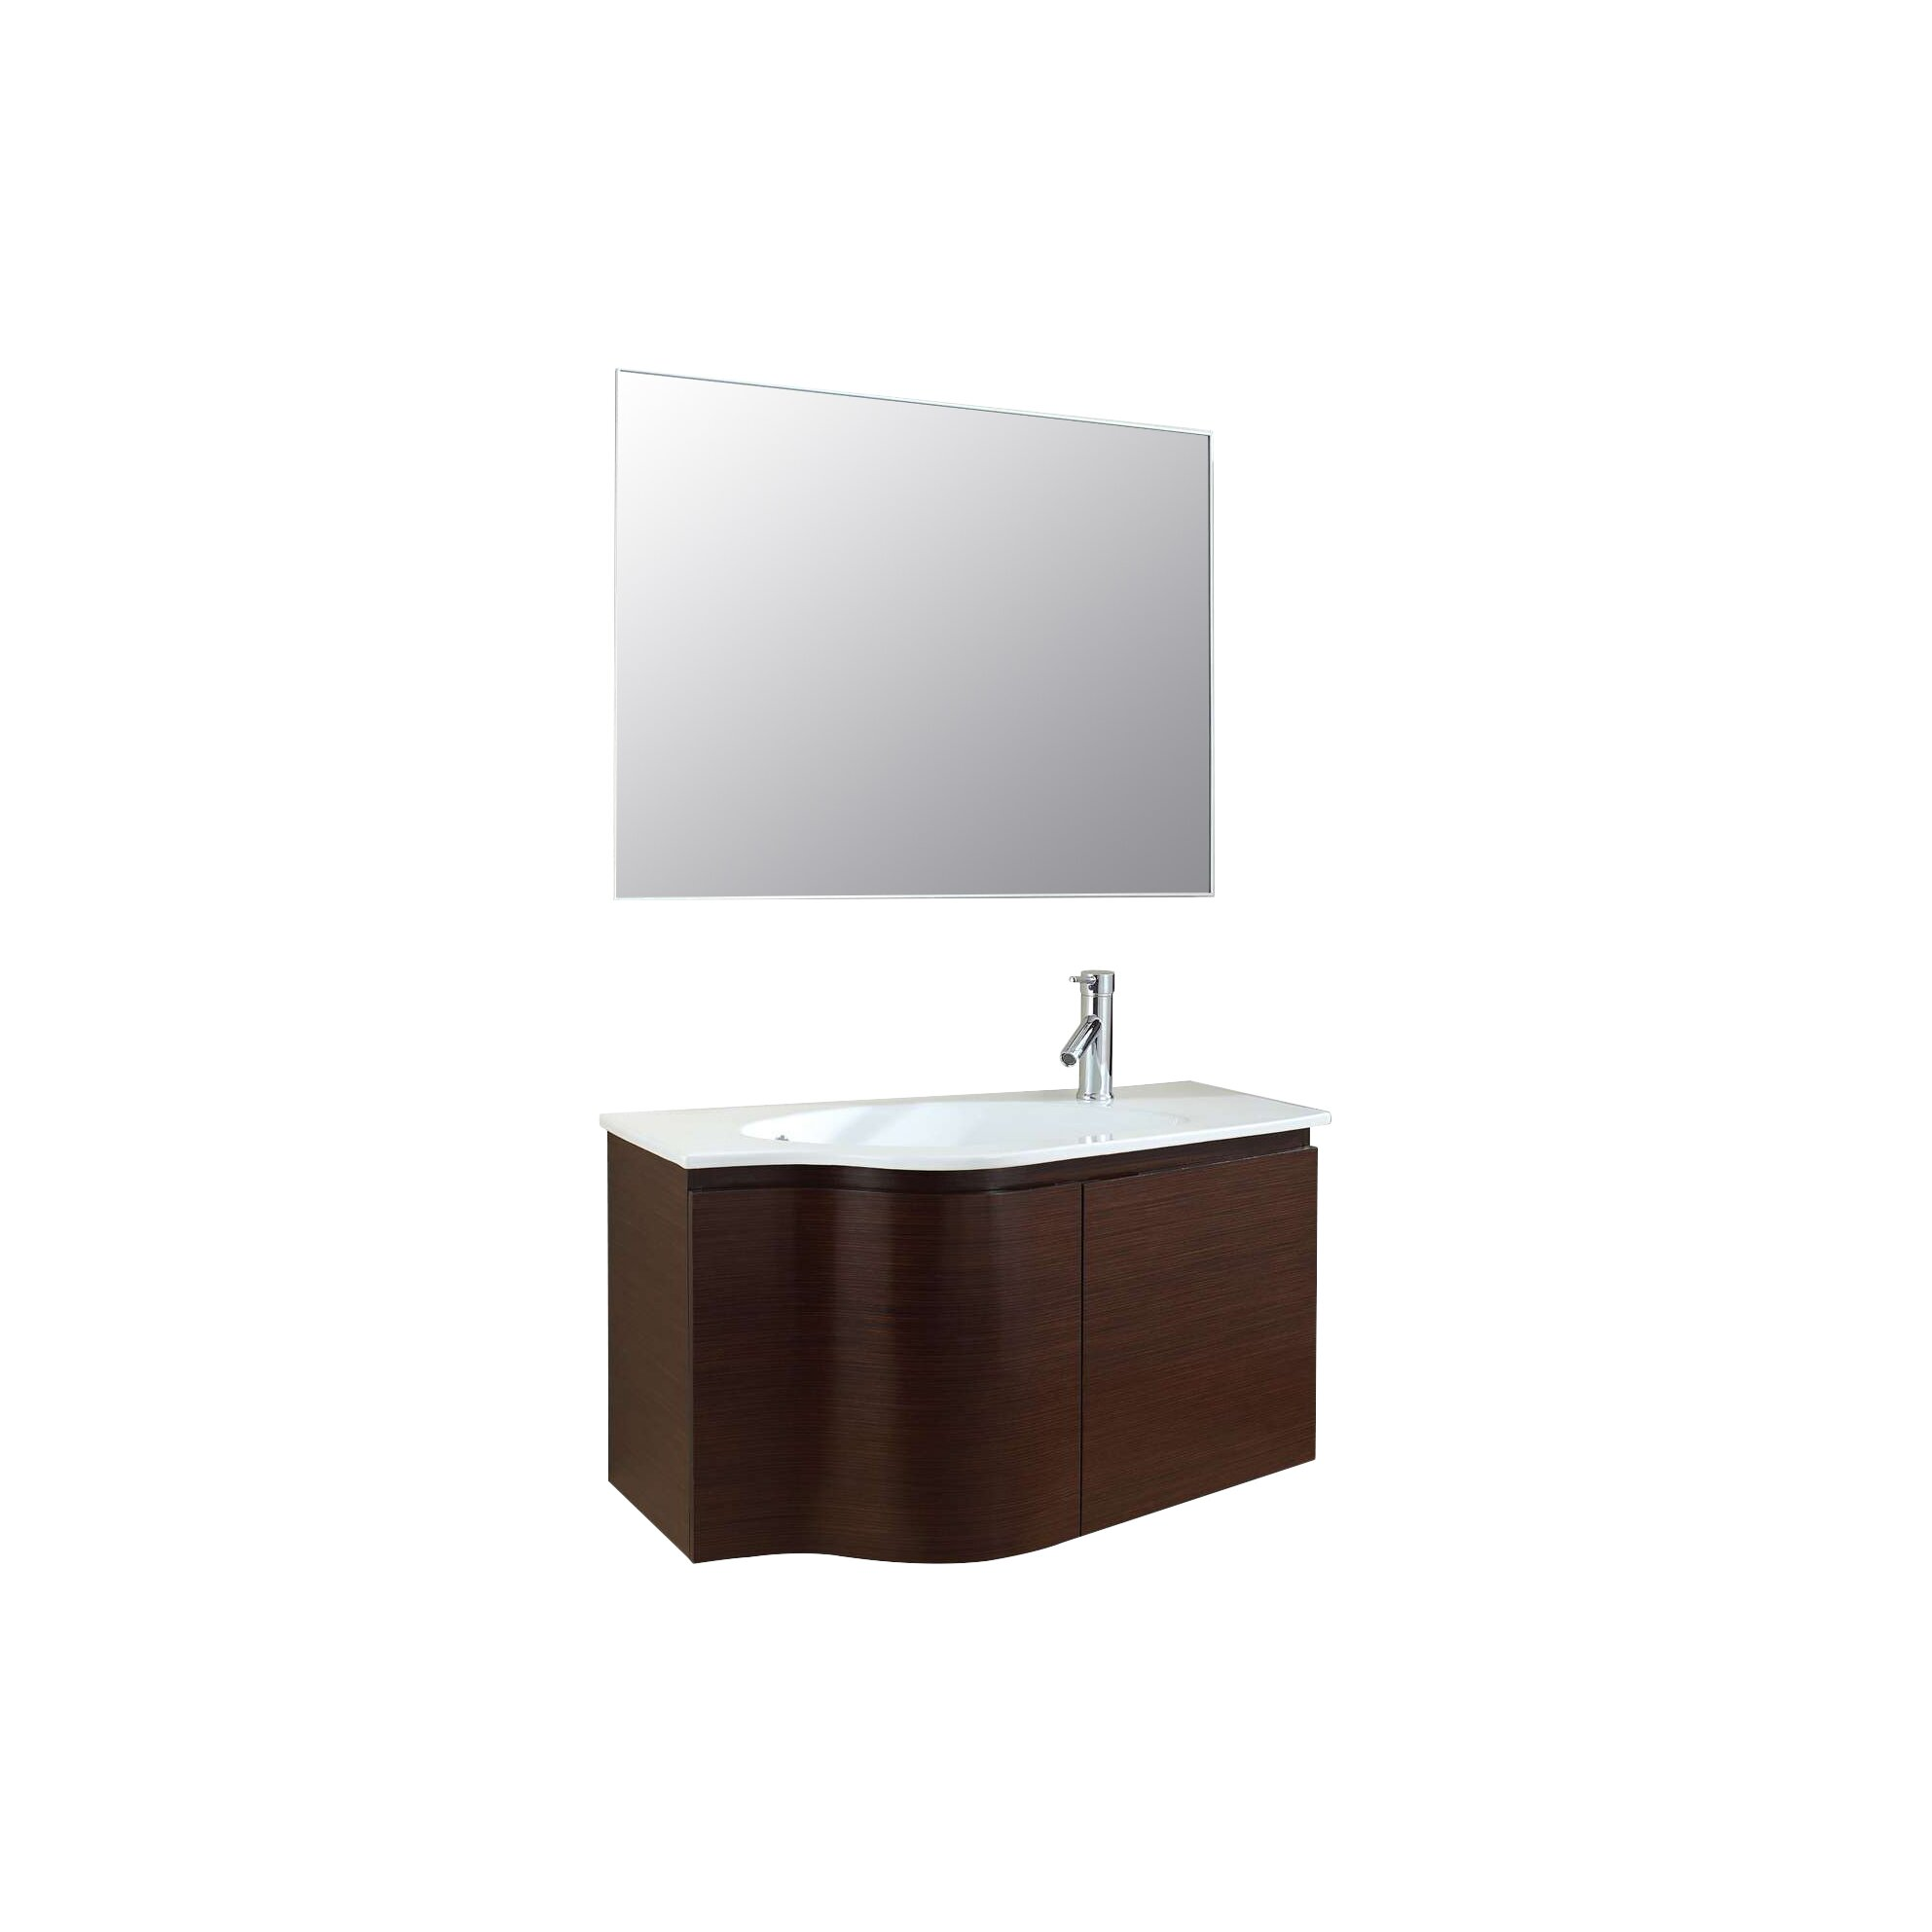 quot; Single Floating Bathroom Vanity Set with Mirror amp; Reviews  Wa